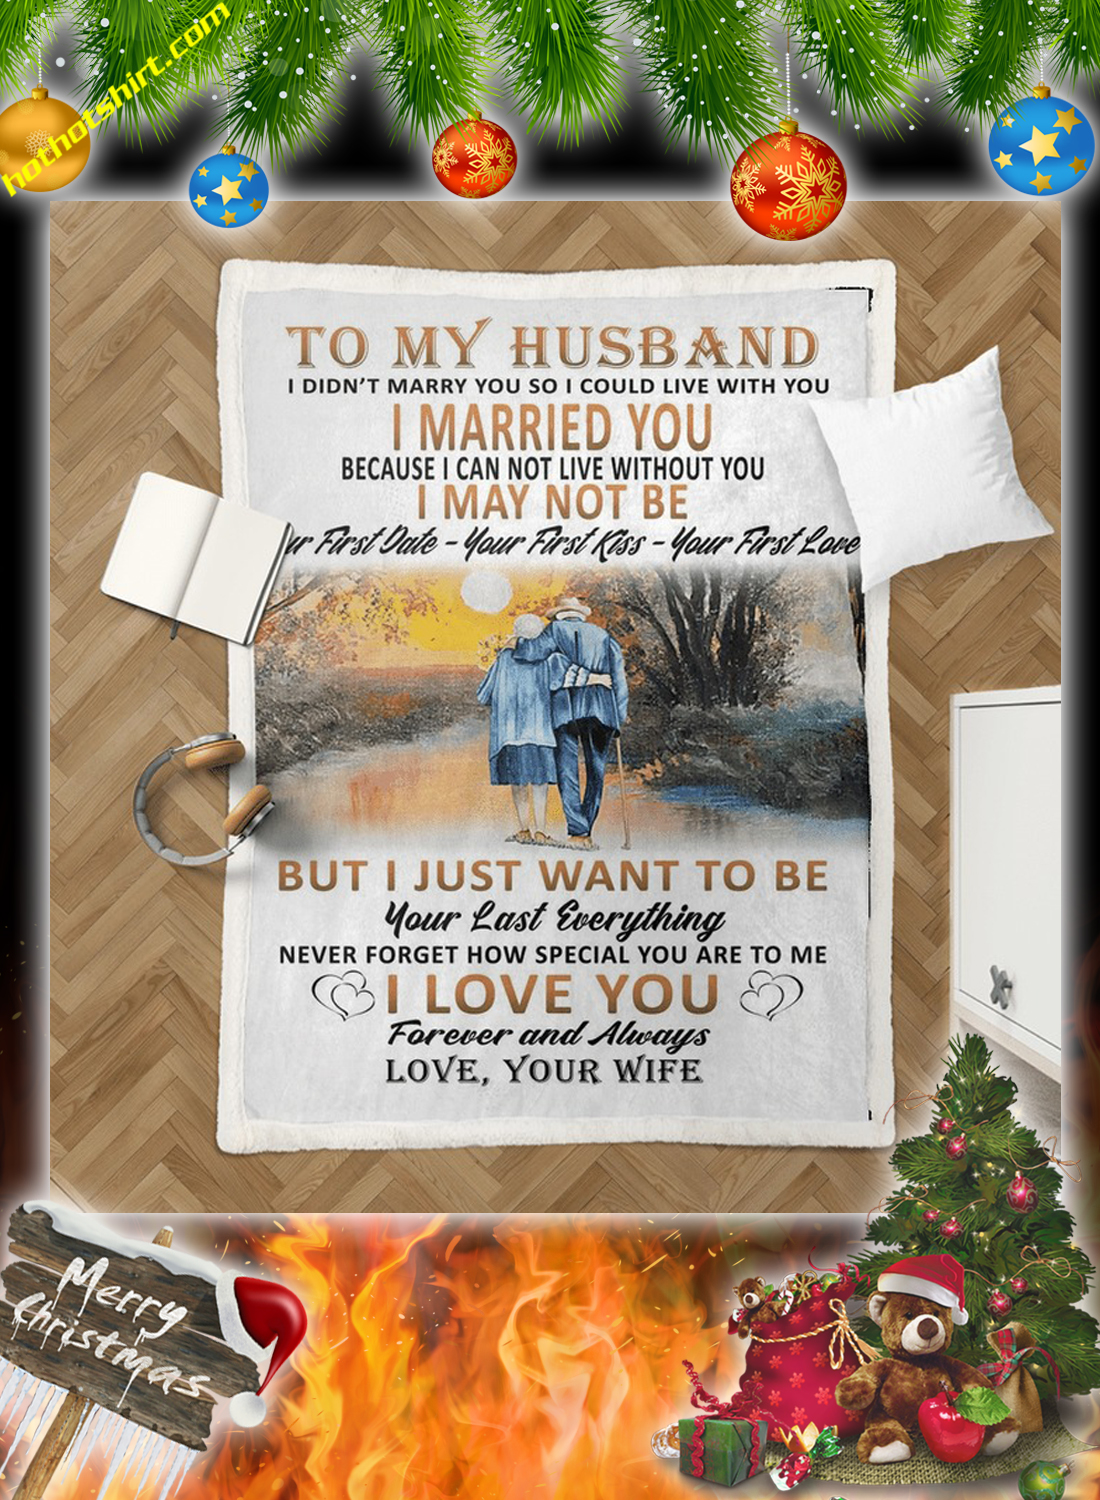 To my husband i didn't marry you so i could live with you your wife quilt 1